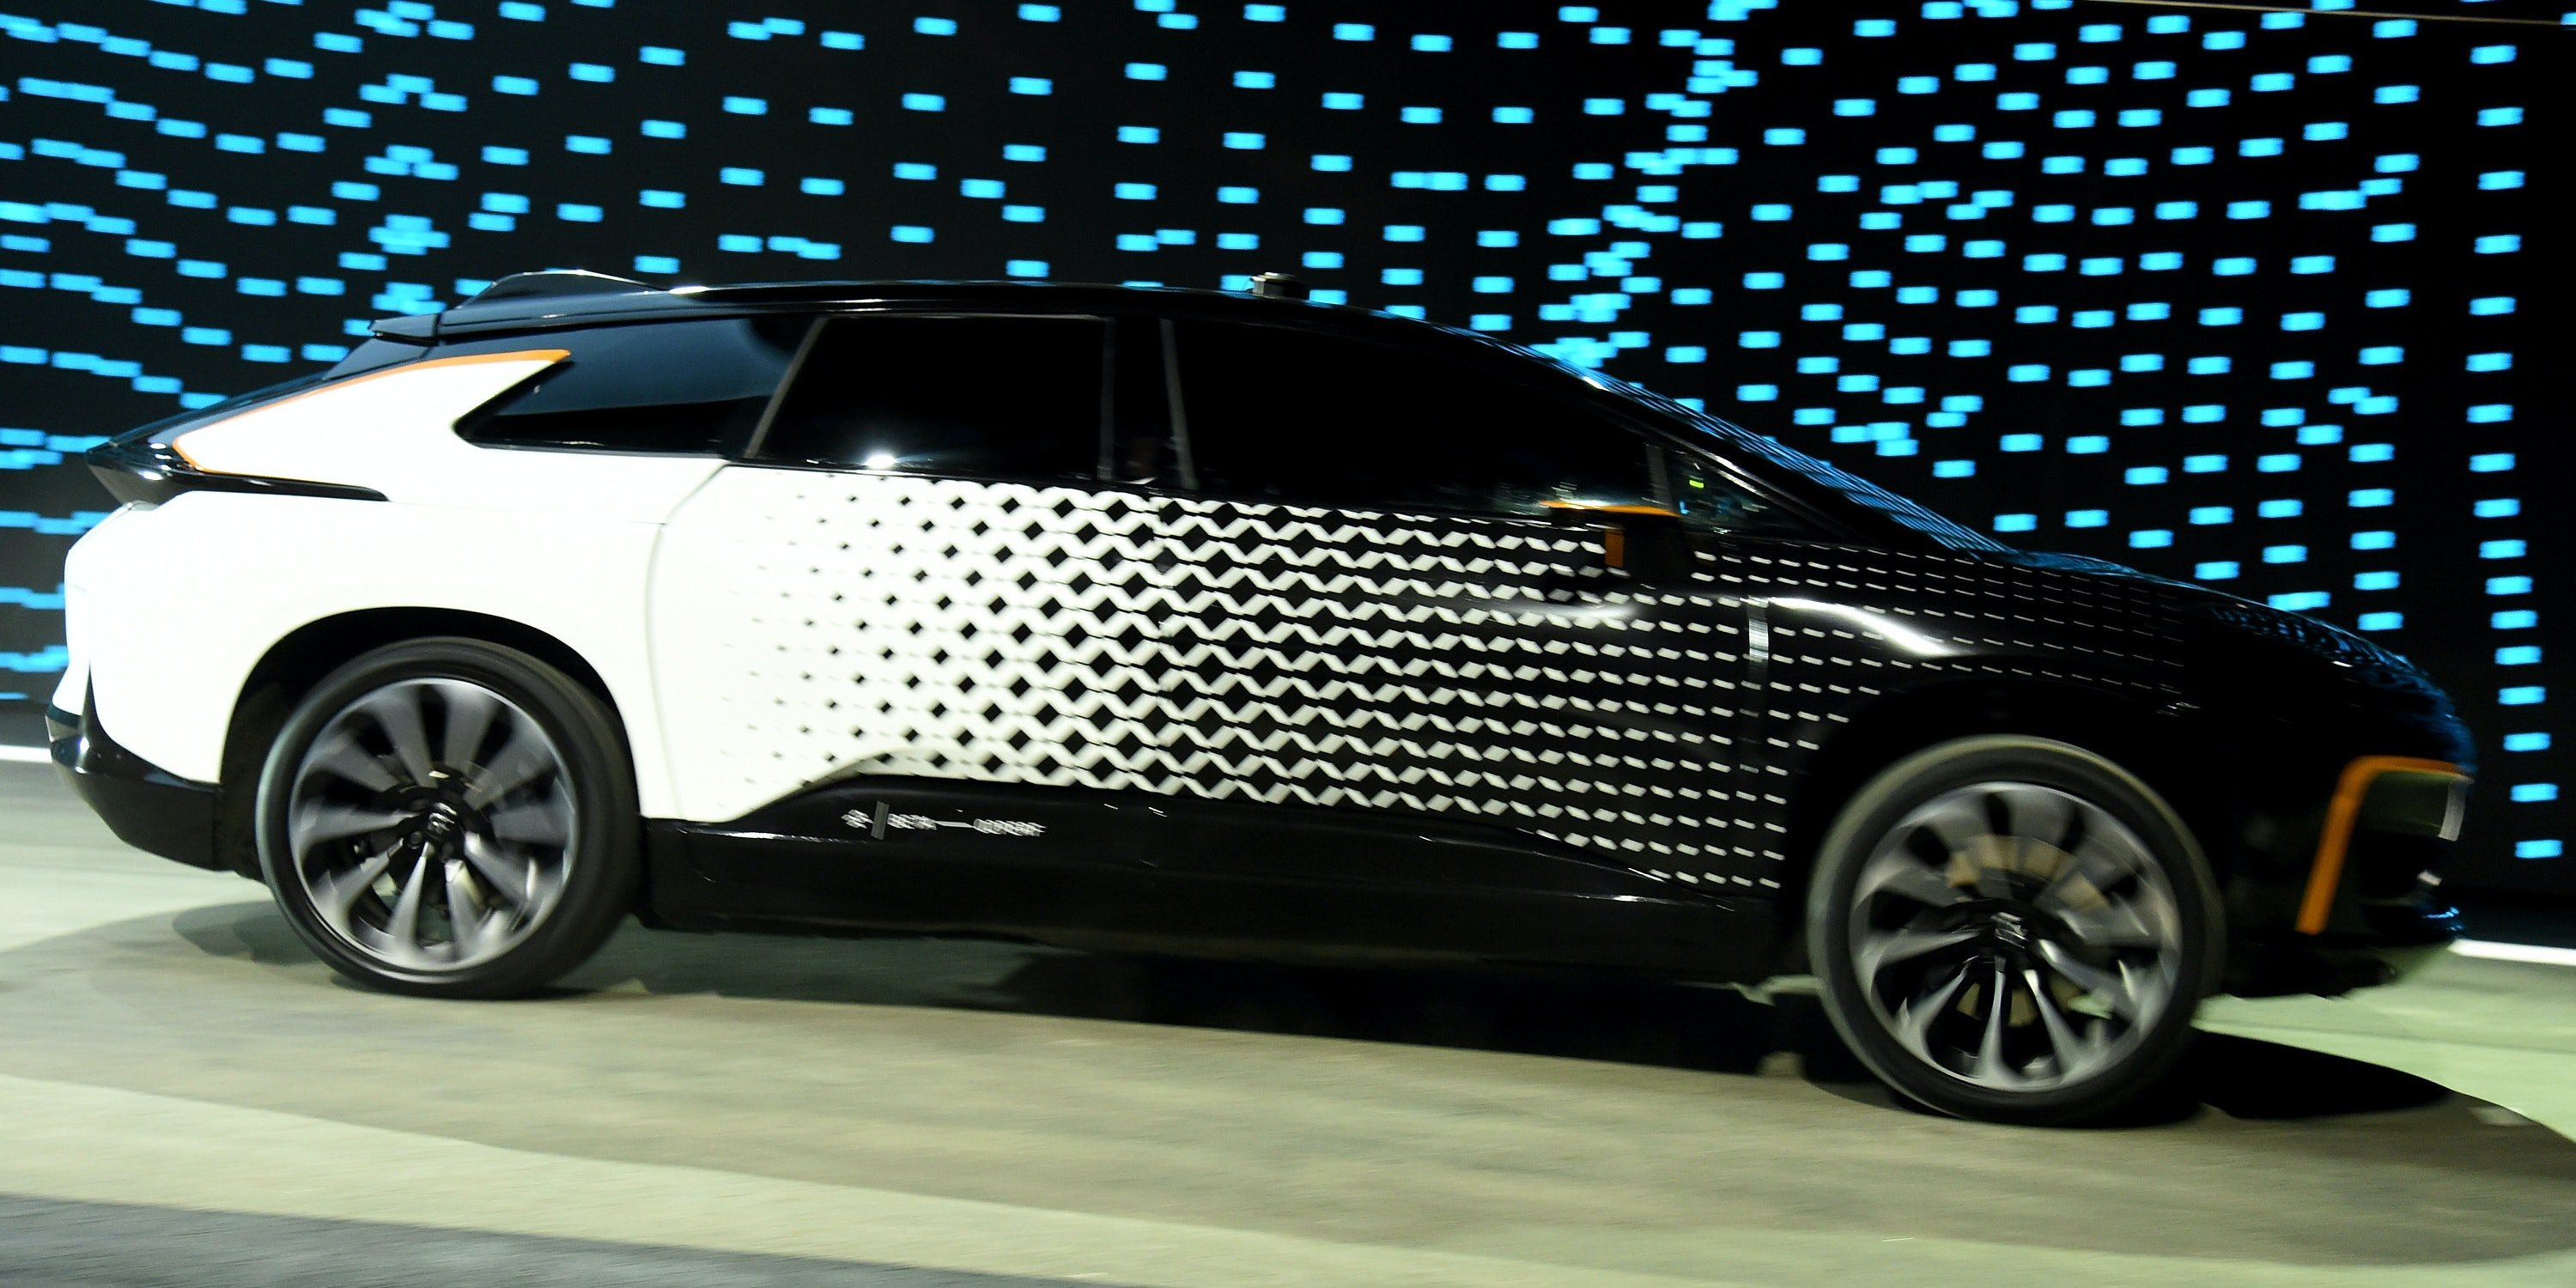 Faraday Future's FF 91 prototype electric crossover vehicle is shown during a speed test as it is unveiled during a press event for CES 2017 at The Pavilions at Las Vegas Market on January 3, 2017 in Las Vegas, Nevada. The 1,050-horsepower FF 91 features autonomous driving with 3D lidar and can go from 0 to 60 mph in 2.39 seconds. CES, the world's largest annual consumer technology trade show, runs from January 5-8 and is expected to feature 3,800 exhibitors showing off their latest products and services to more than 165,000 attendees.